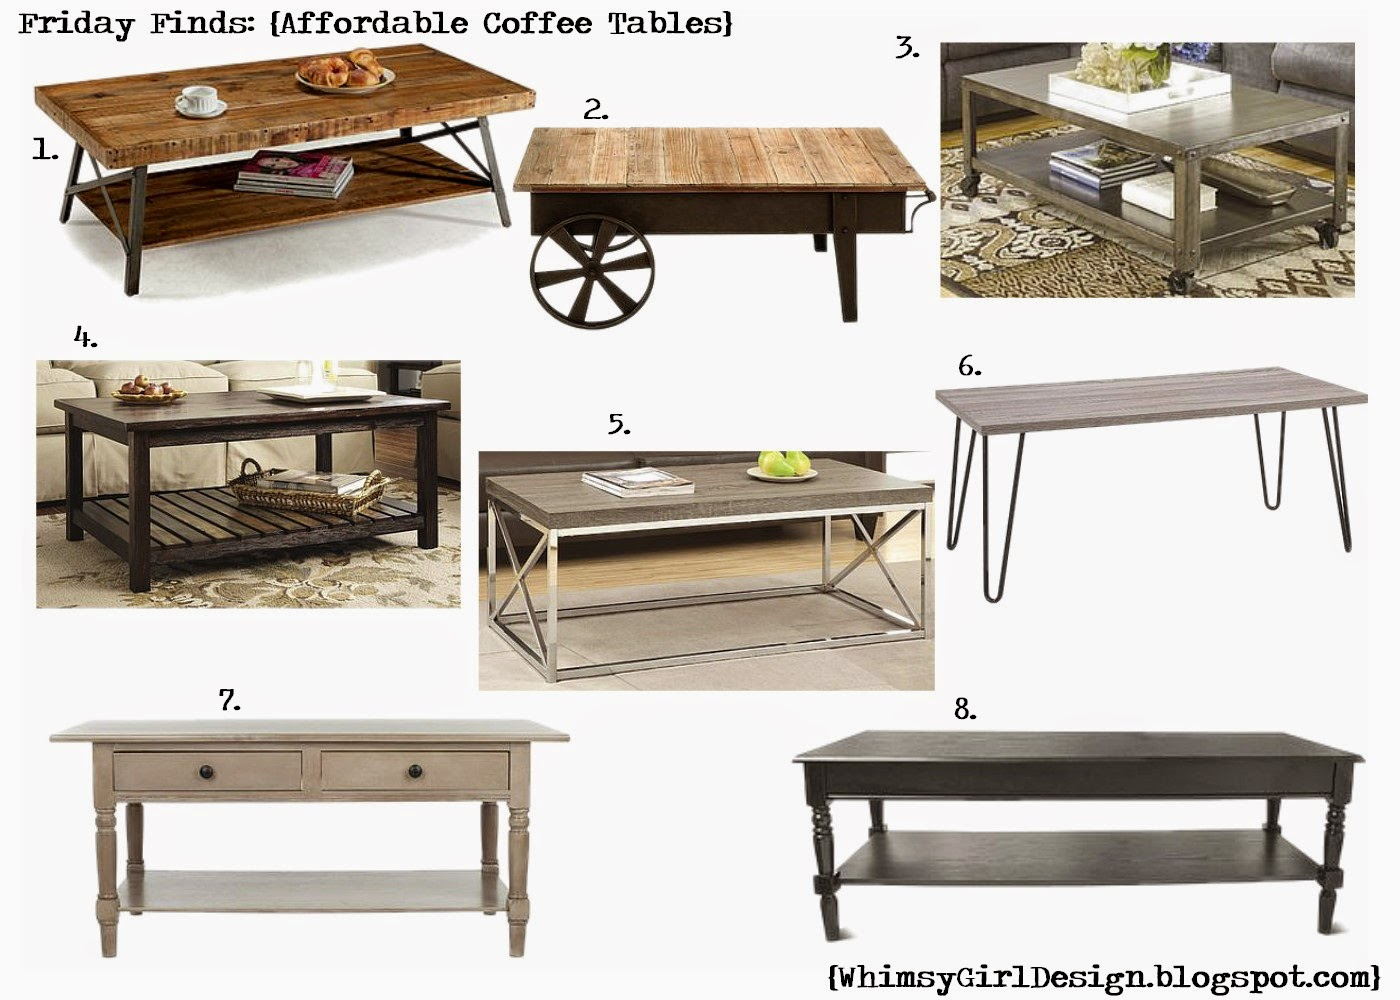 whimsy girl: Friday Finds: {Affordable Coffee Tables}